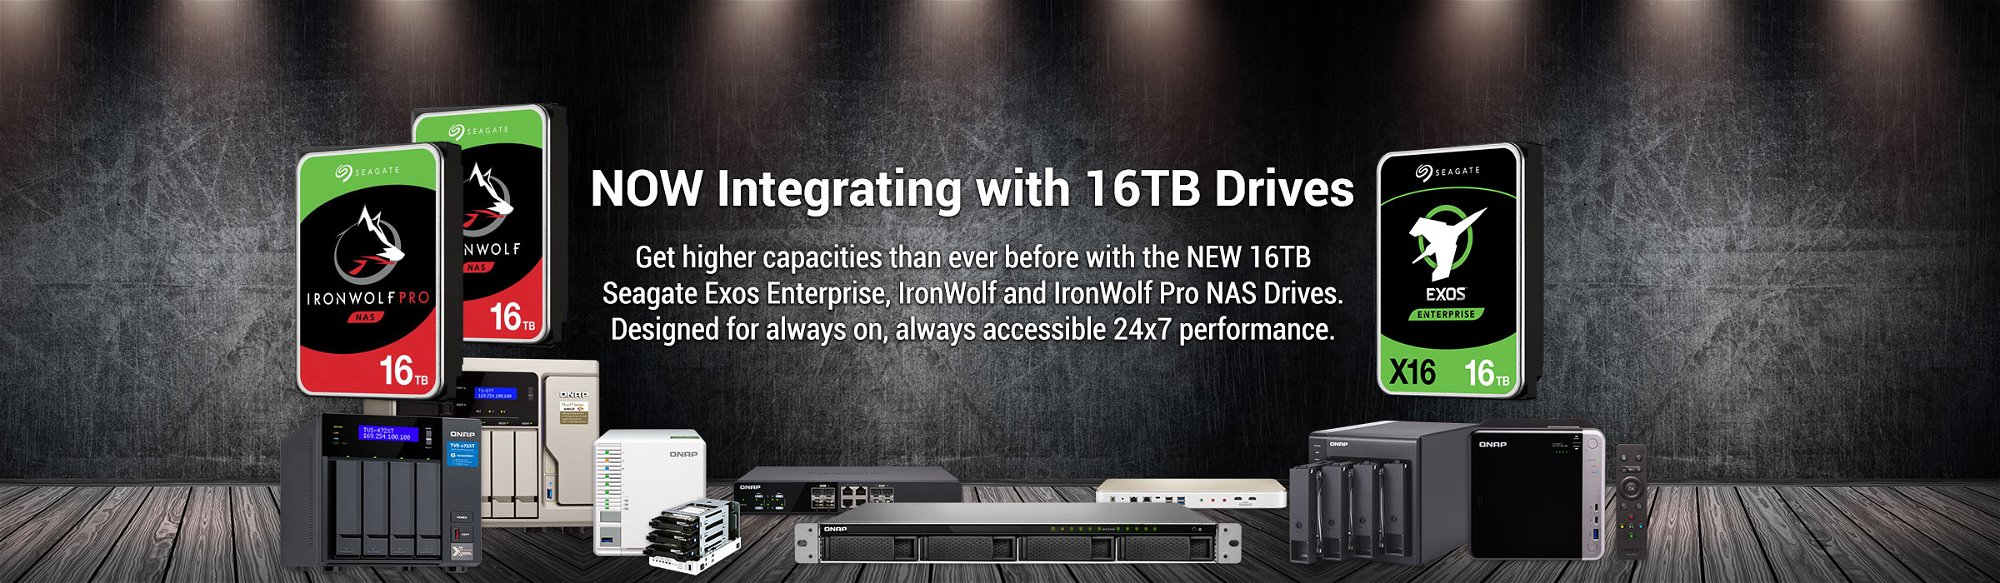 Now integrating with 16TB Seagate Hard Drives